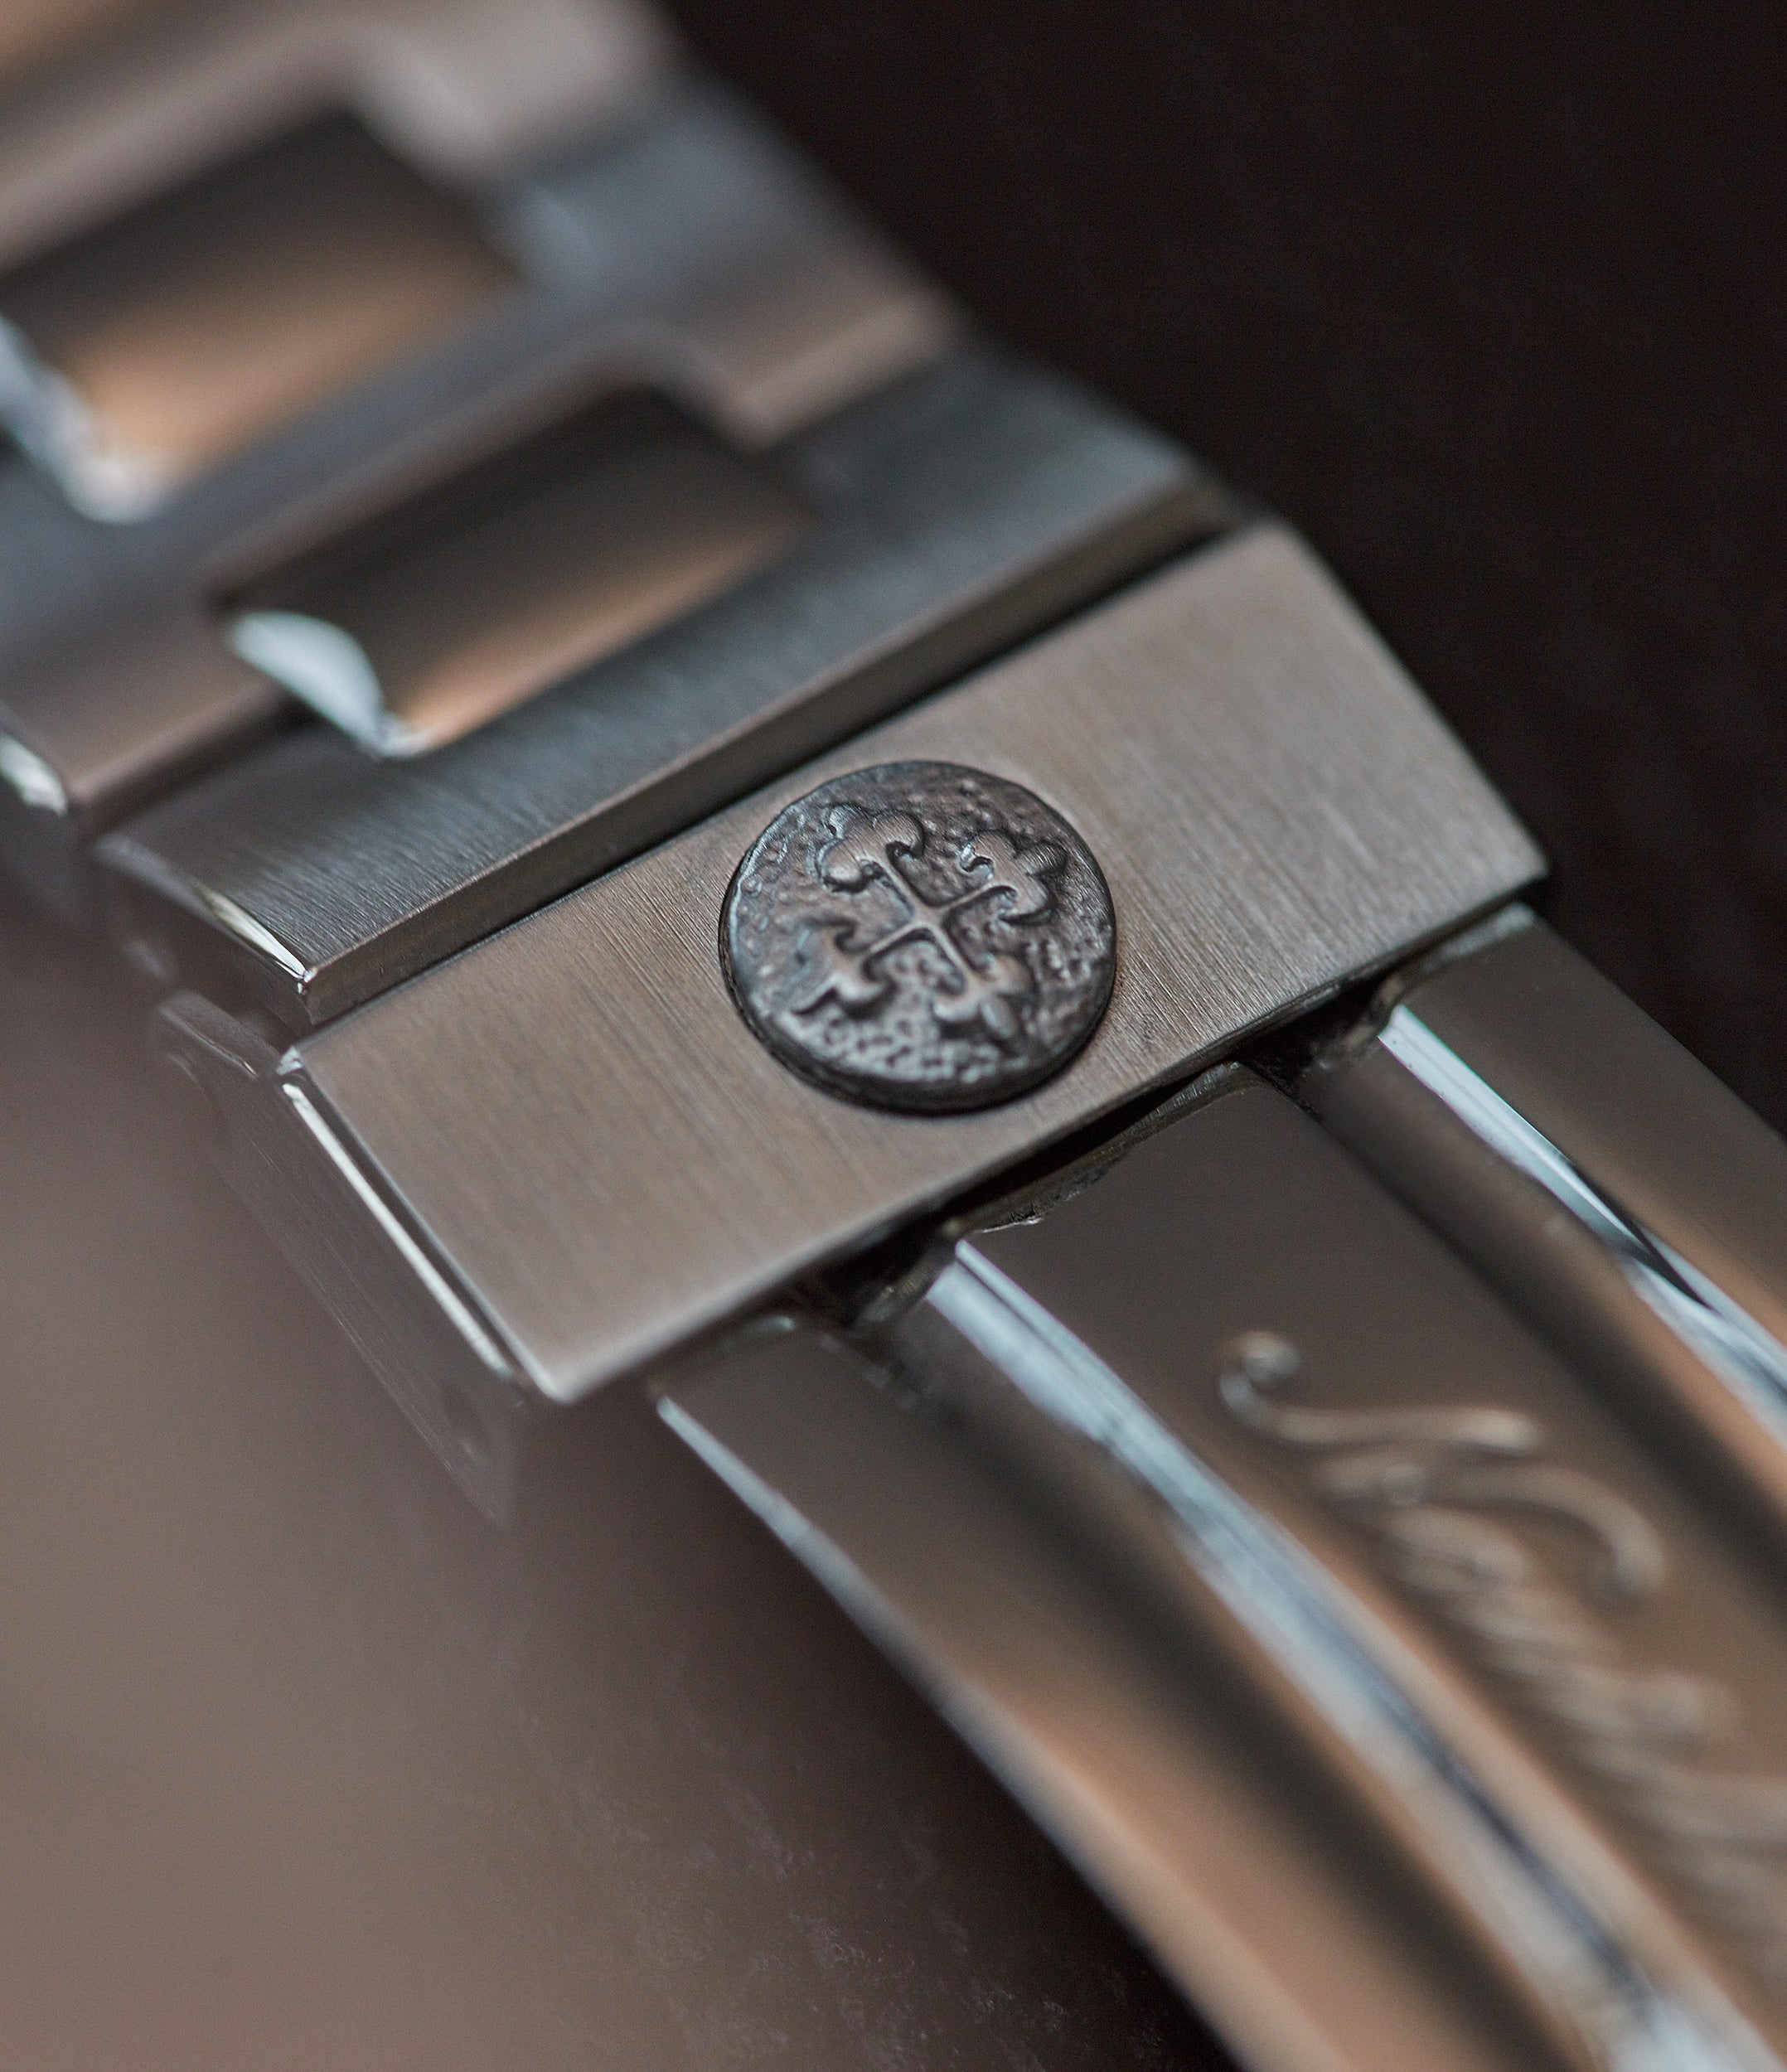 Patek Philippe Nautilus 3800 buckle saftey clasp in stainless steel from A Collected Man London